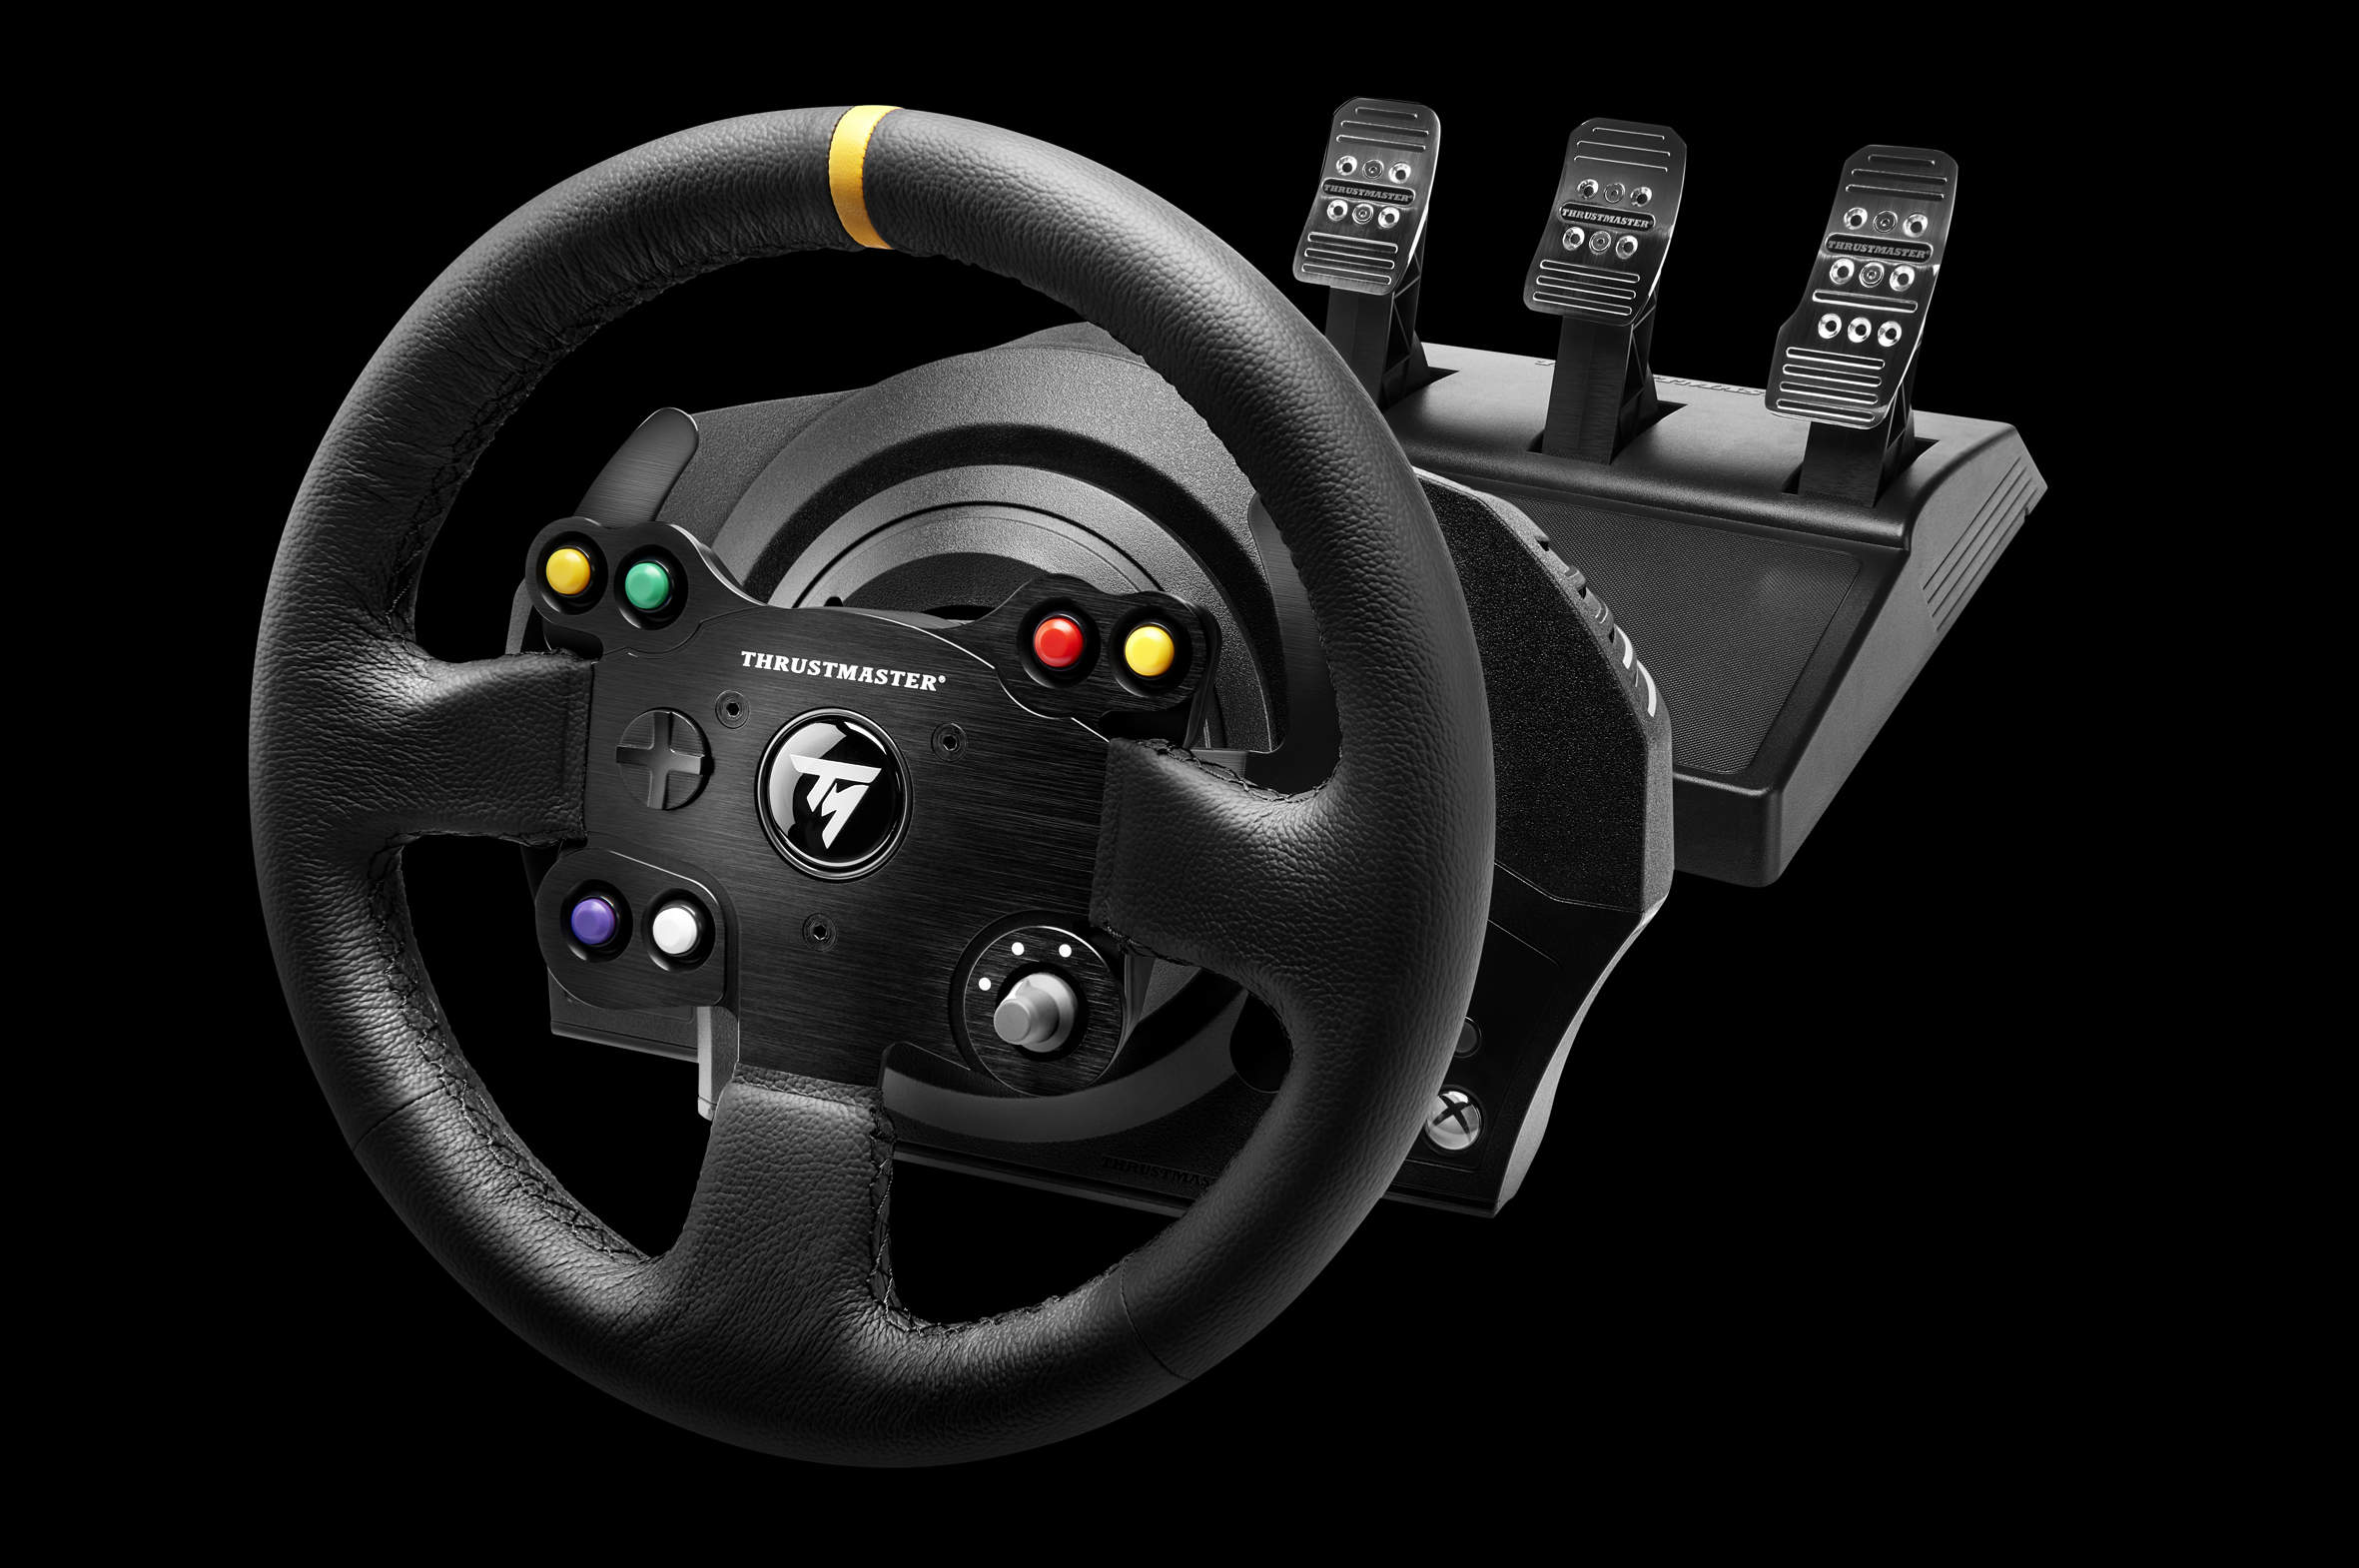 Thrustmaster Annonce Le Volant Xbox One TX Racing Wheel Leather Edition Xbox One Xboxygen